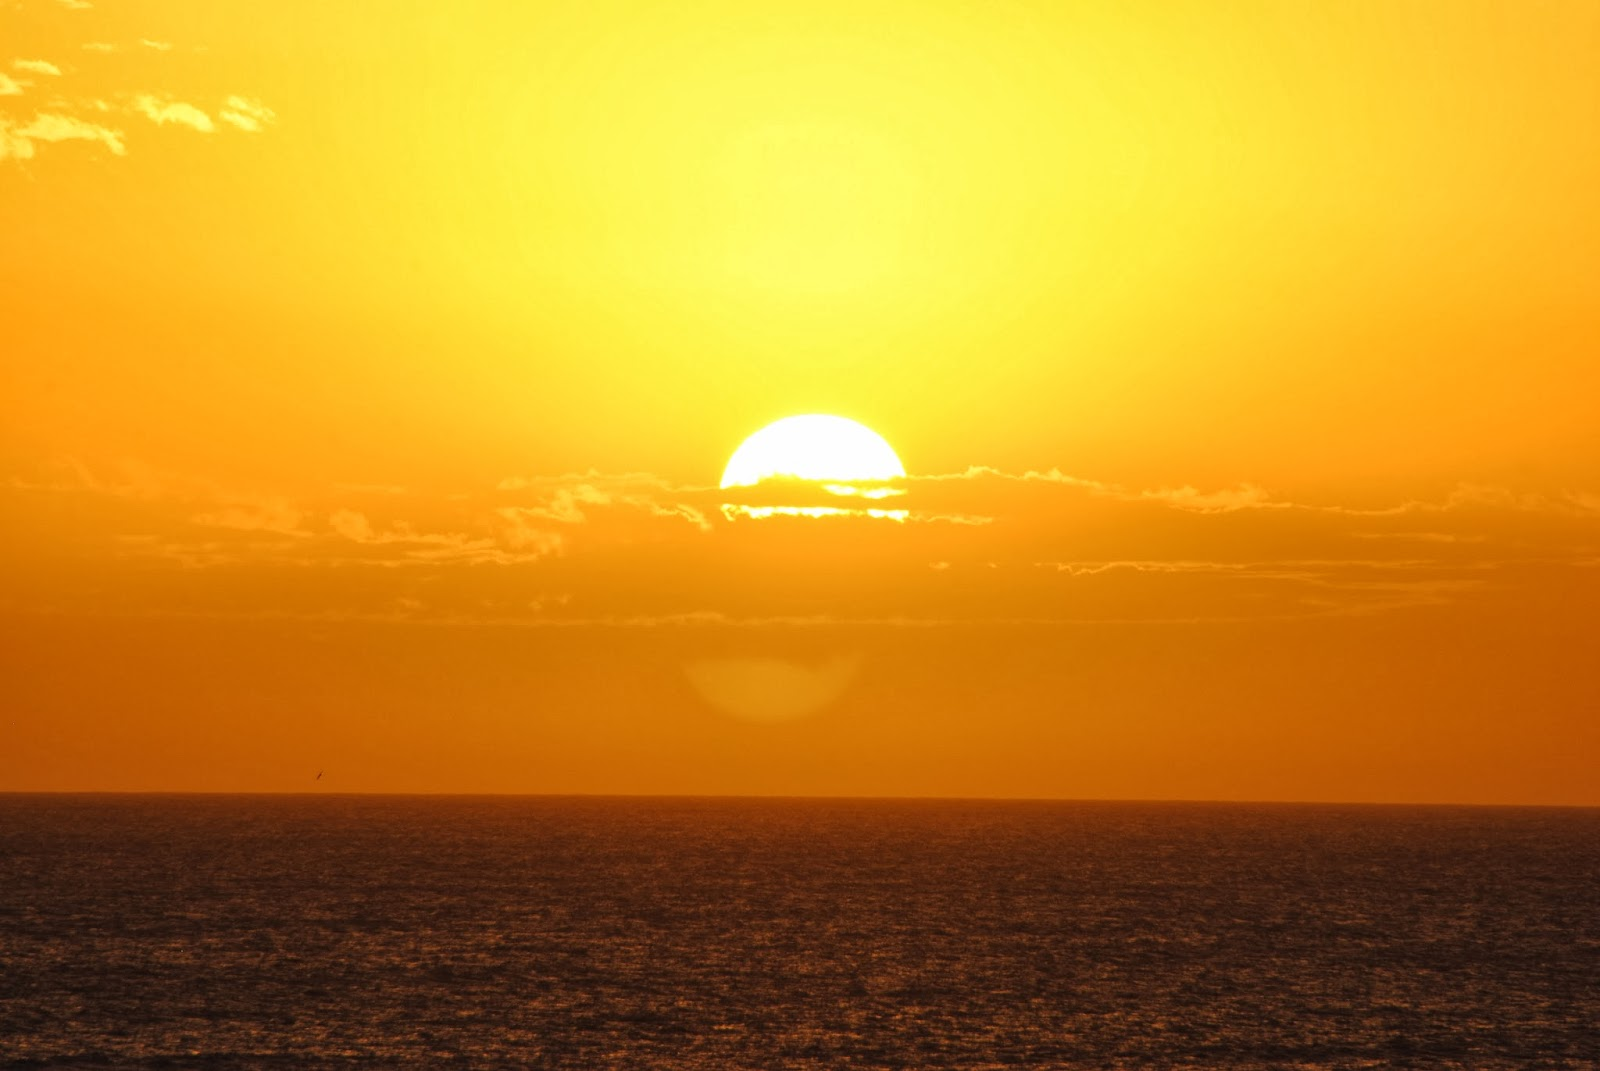 Big Sun with a 300 lens in villa gesell argentina